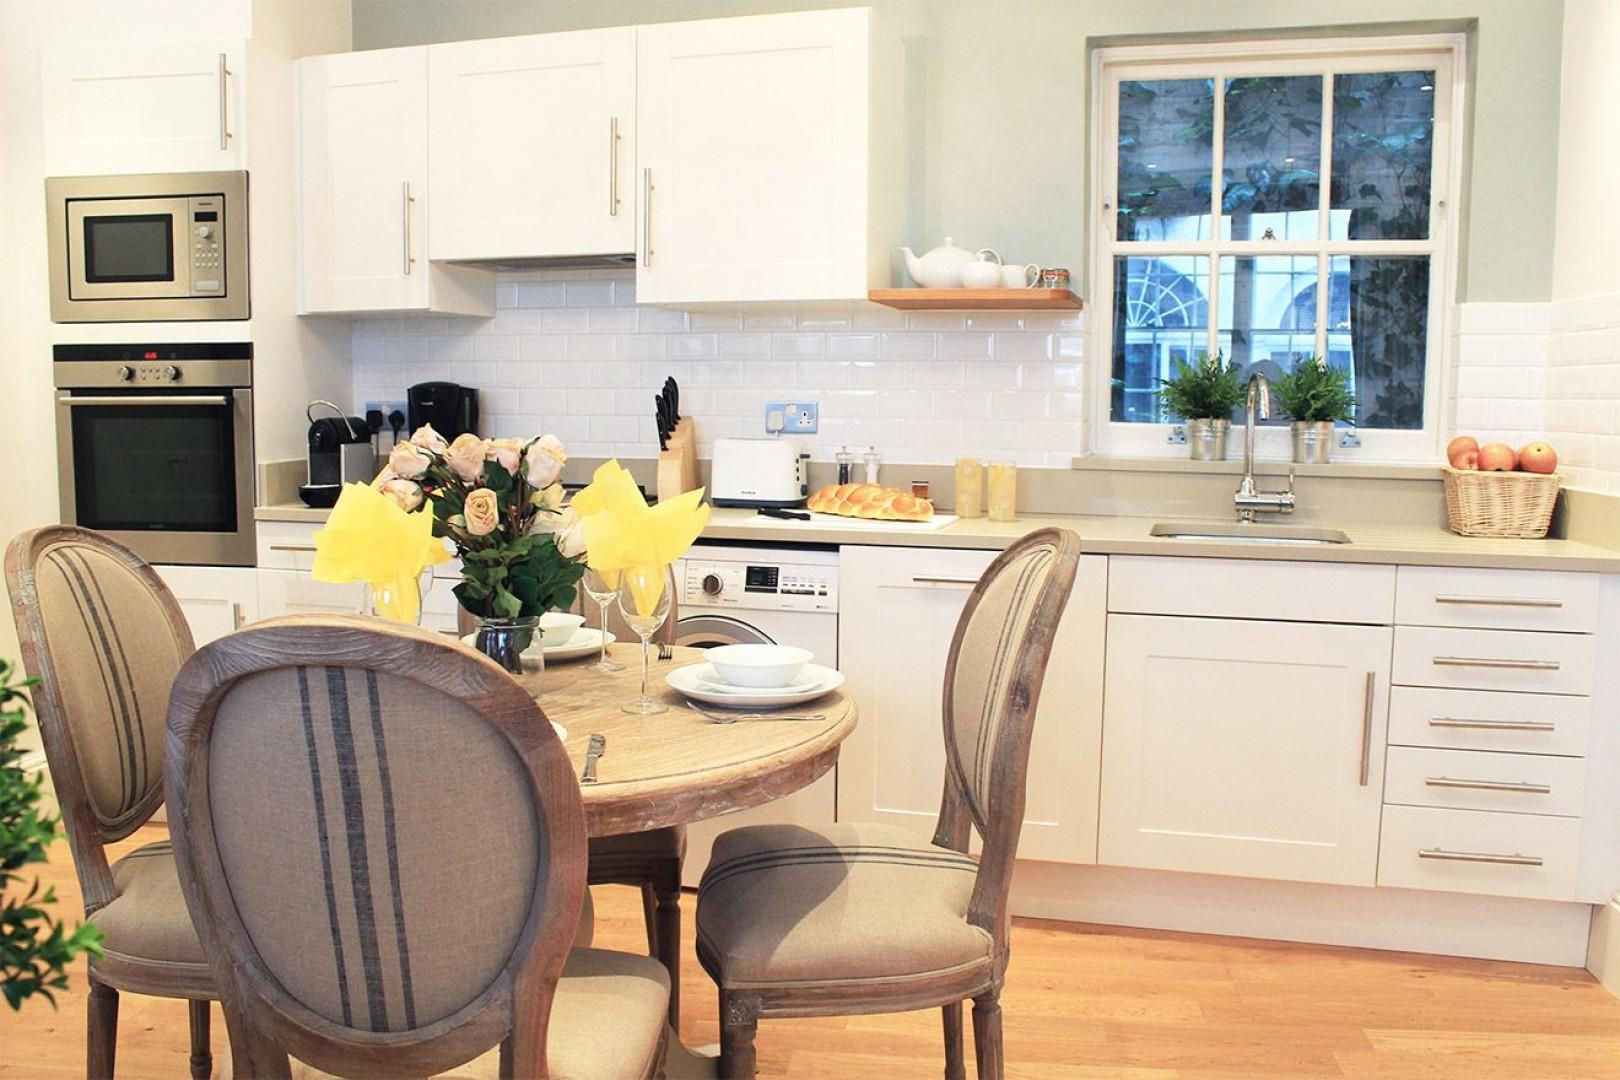 Beautifully remodeled kitchen and dining area of mews home